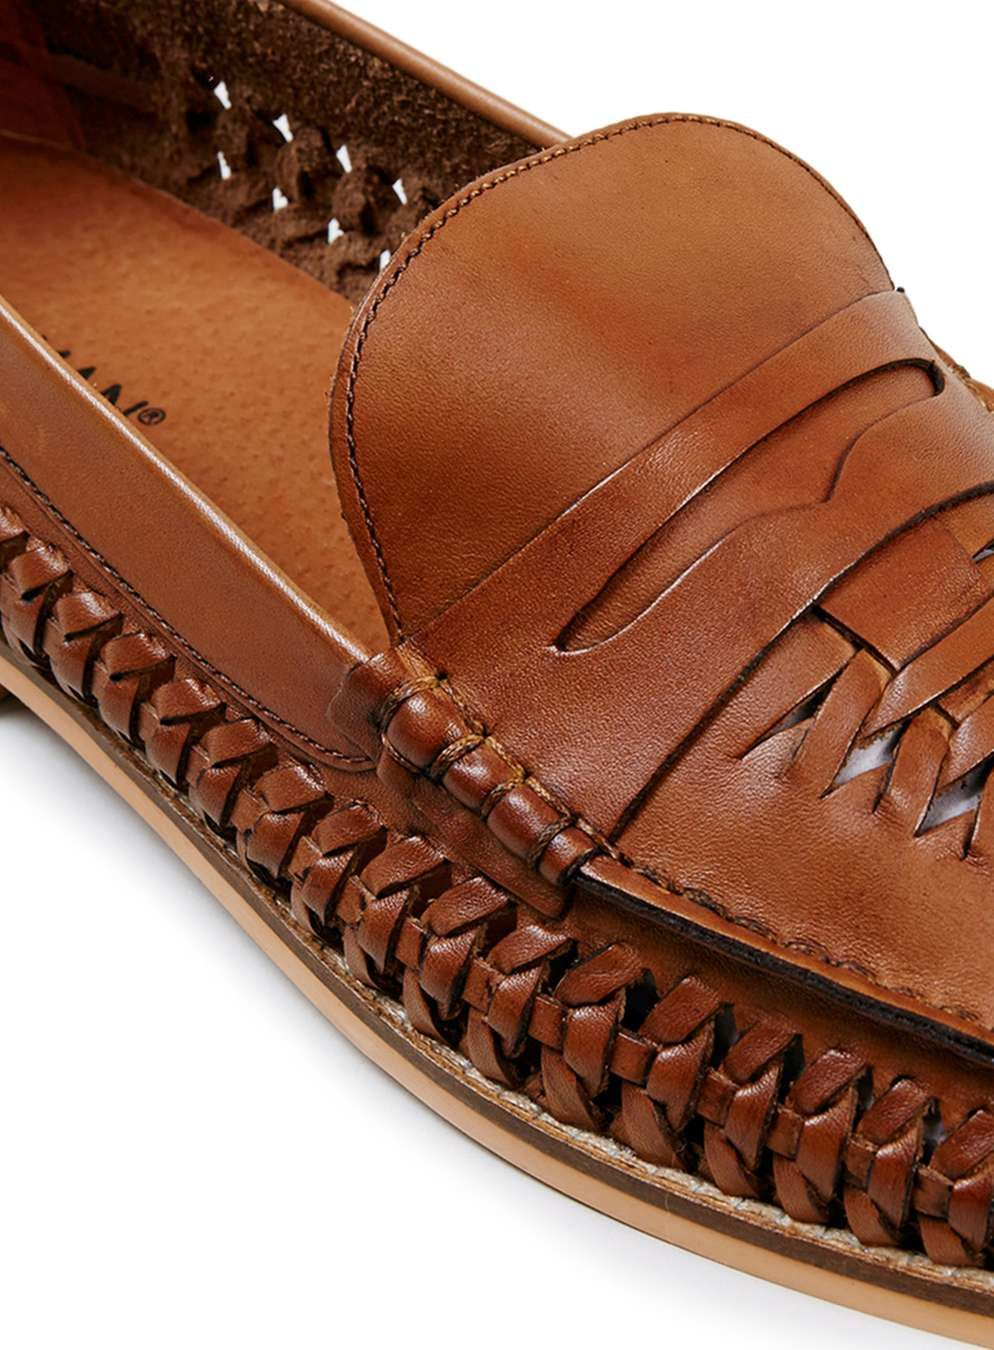 d933cd7dea55cc Marne Loafer Tan Leather Woven Loafers - Topman